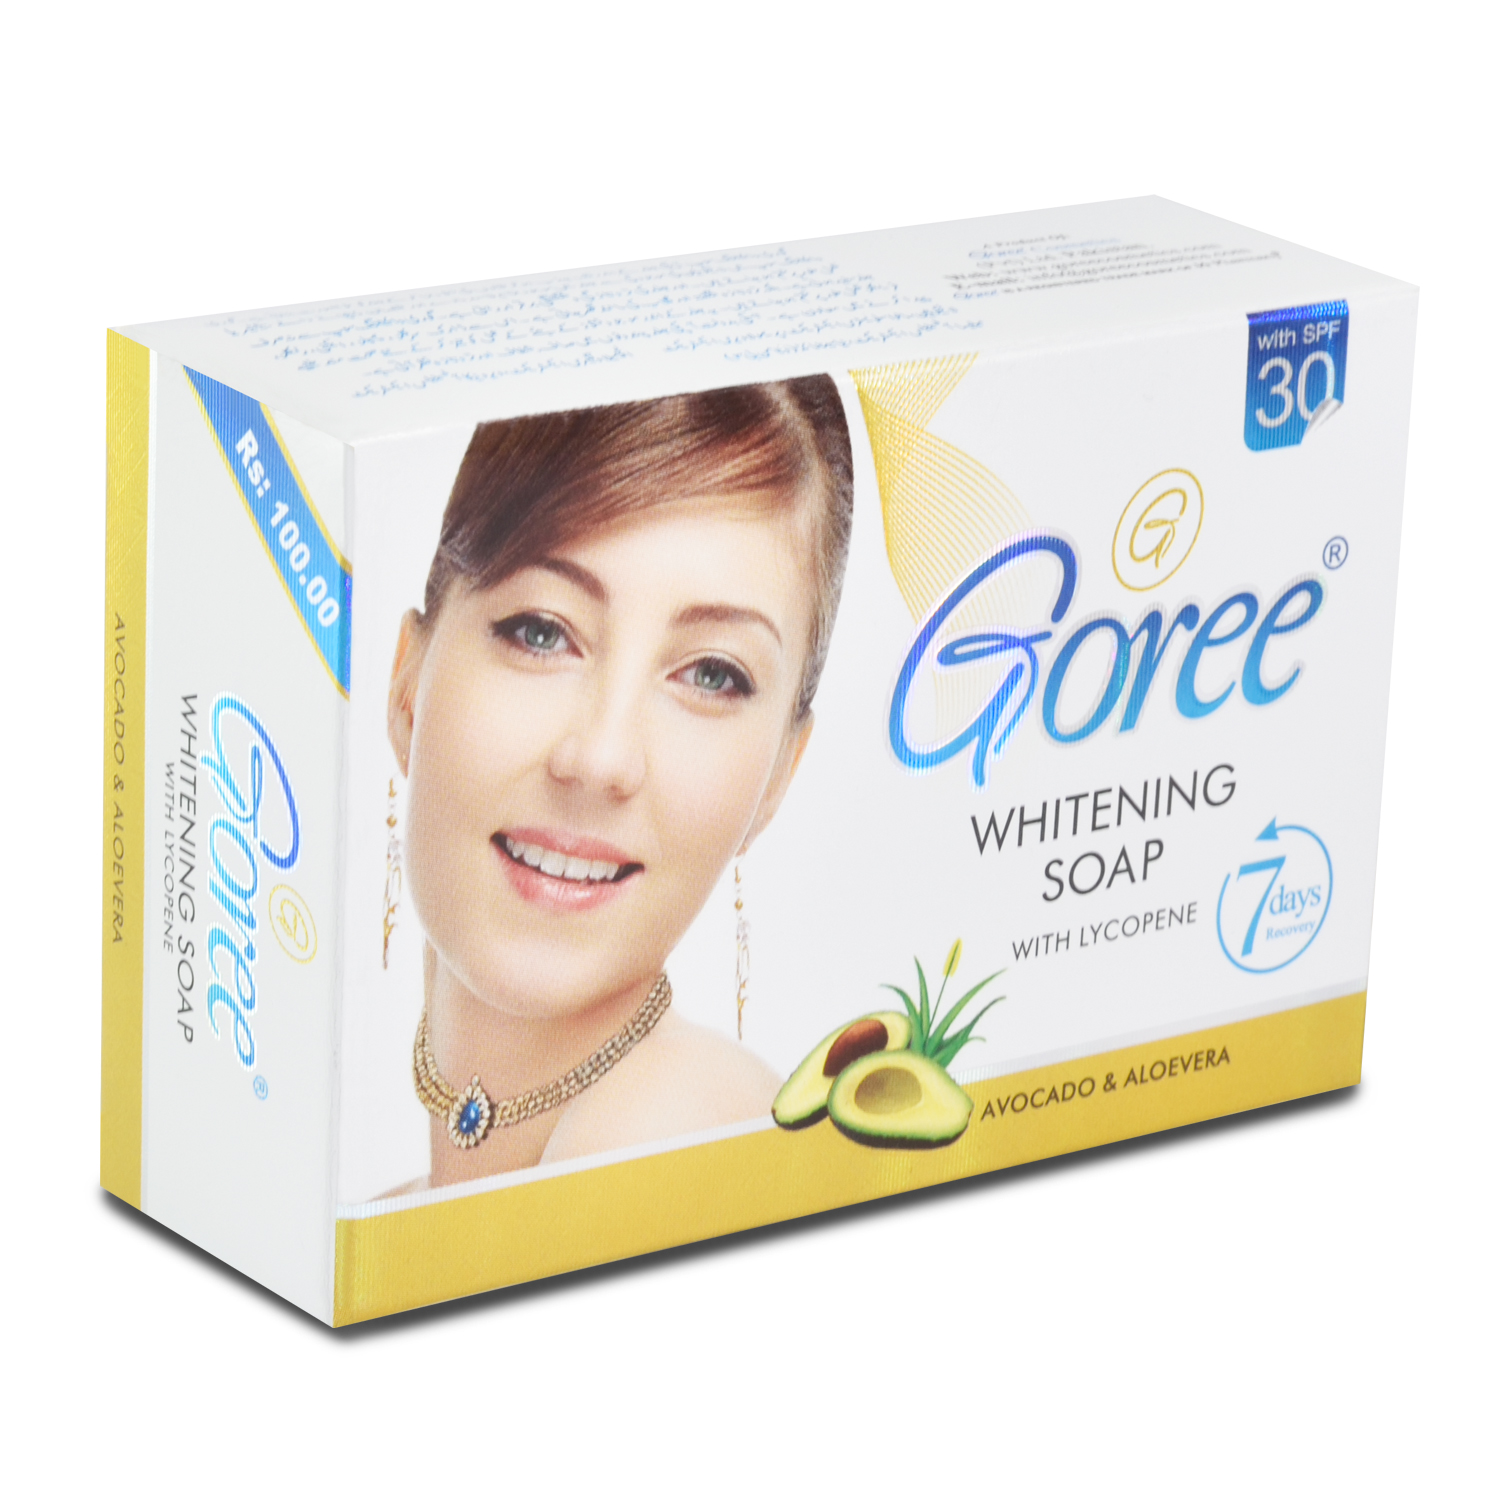 Image result for goree soap